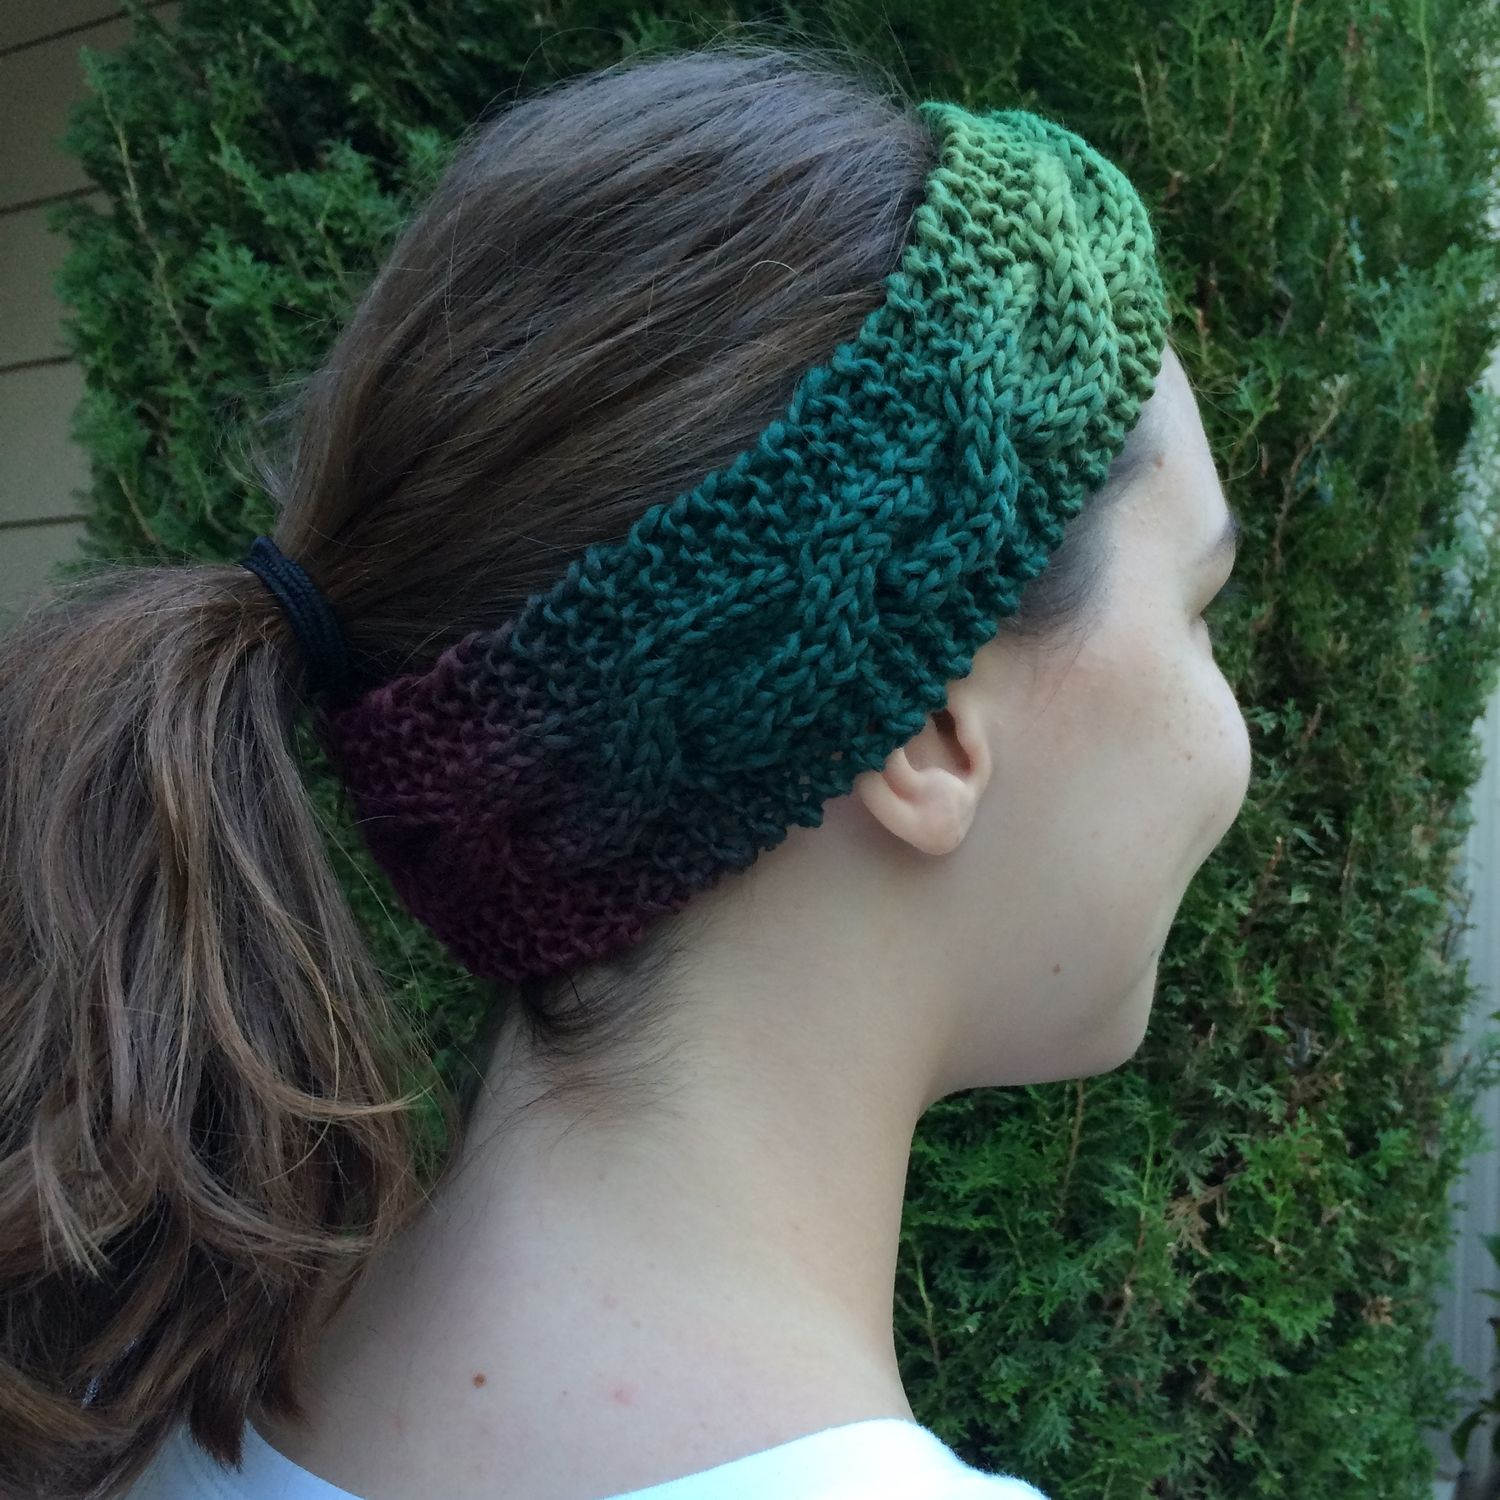 Easy Ombre Headband Free Knitting Pattern | Knitting patterns, Ombre ...